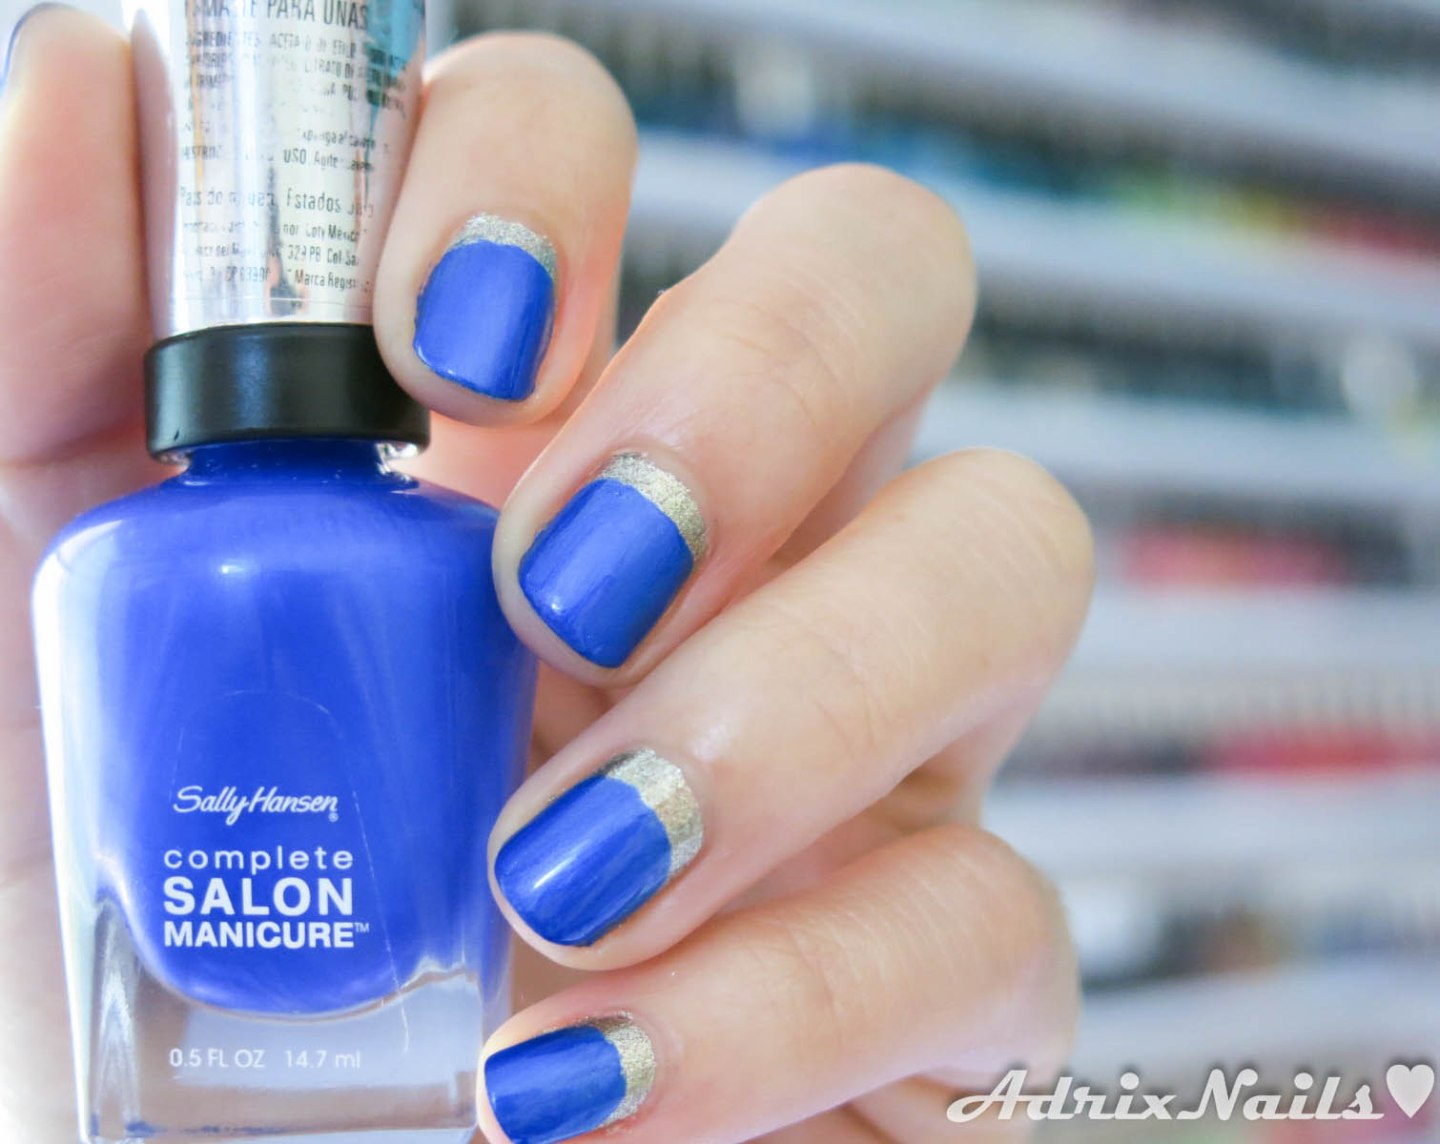 Sally Hansen, Batbano Blue, Shoot the Moon, Ruffian manicure, uñas ruffian, paso a paso, uñas mate, esmalte mate, uñas sencillas, esmaltes, uñas, diy nails, uñas paso a paso, swatches, nails, nail art, nail polish, colores, review, adrix nails, blog mexicano dedicado al nail art, blogueras mexicanas, mexican bloggers, blogs de méxico, nailpolishlove, blogs de uñas de mexico, blog de uñas, blogs de belleza